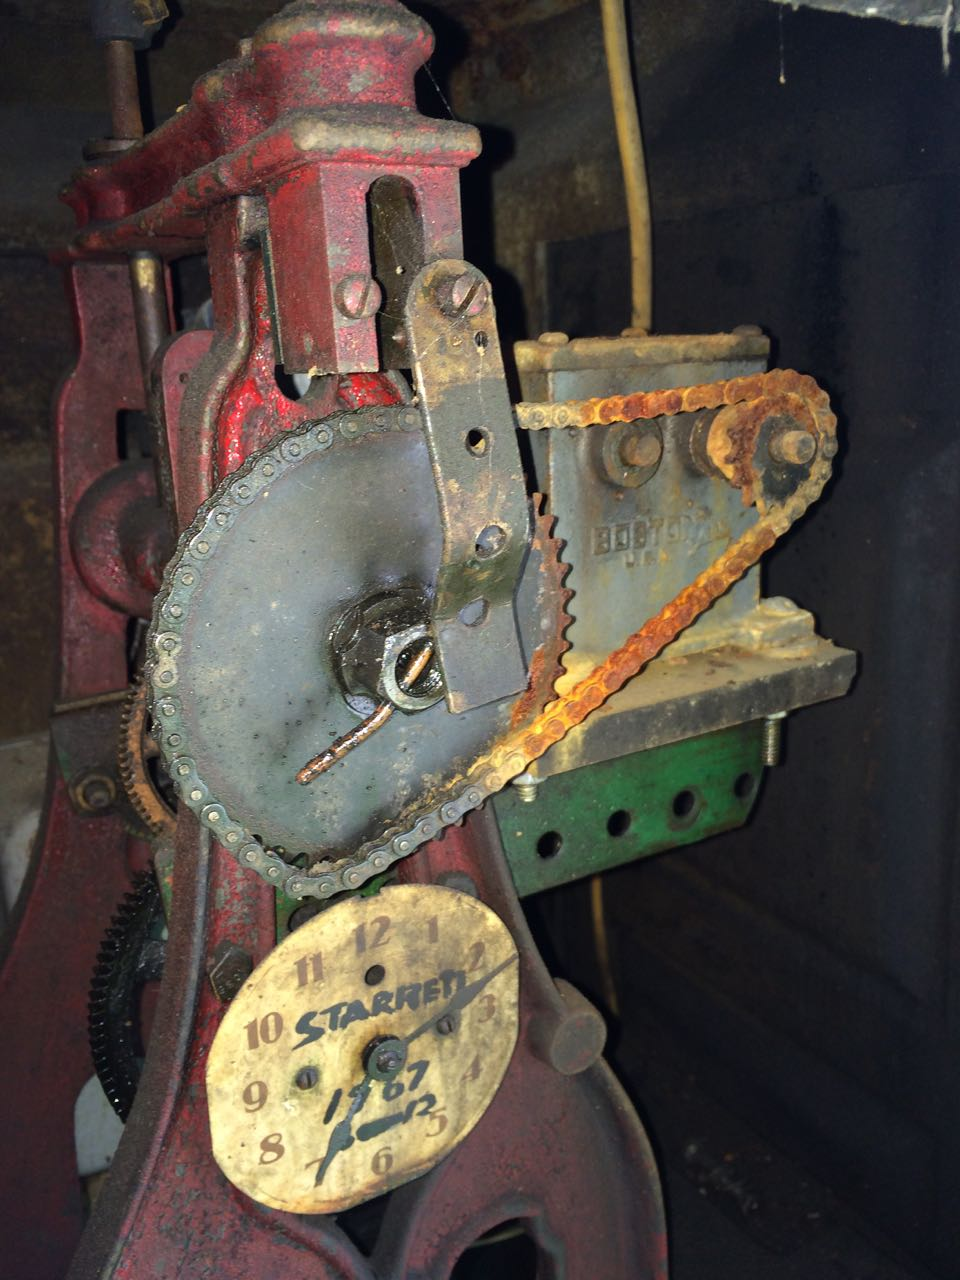 J_Seth_Thomas_chain_drive_internal_indicator.jpg